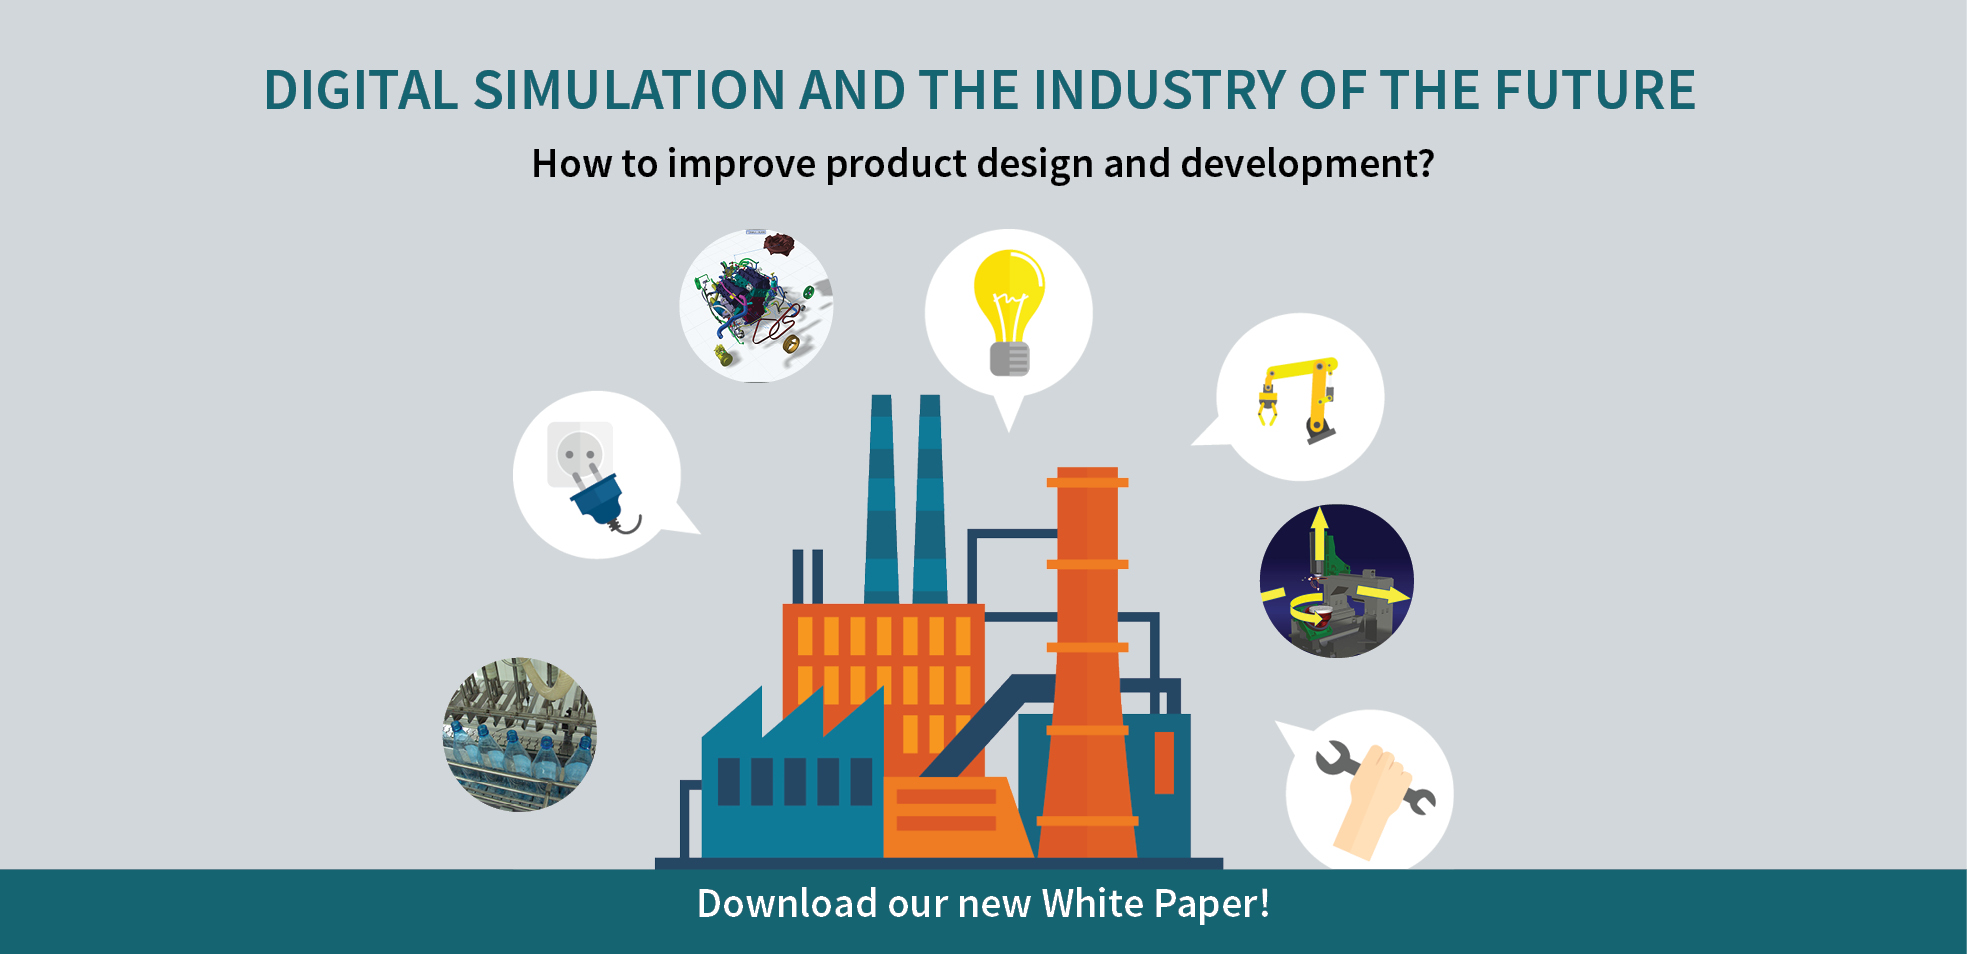 KEONYS_White_Paper_Industry_of_the_future_Digitale_Simulation